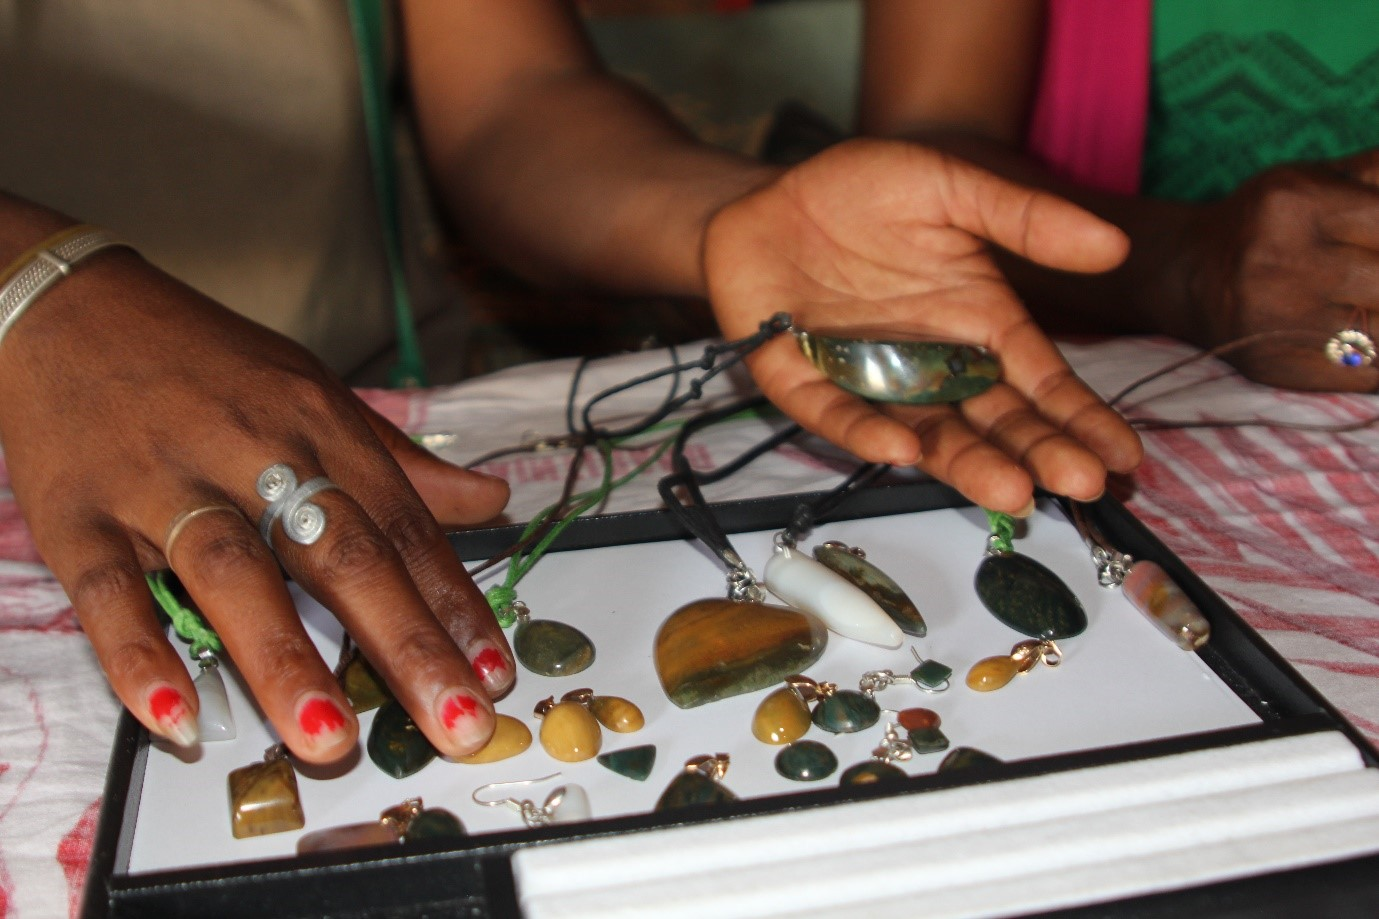 Jewellery made by the women from local jasper and agate. (Photo taken by Lynda Lawson)